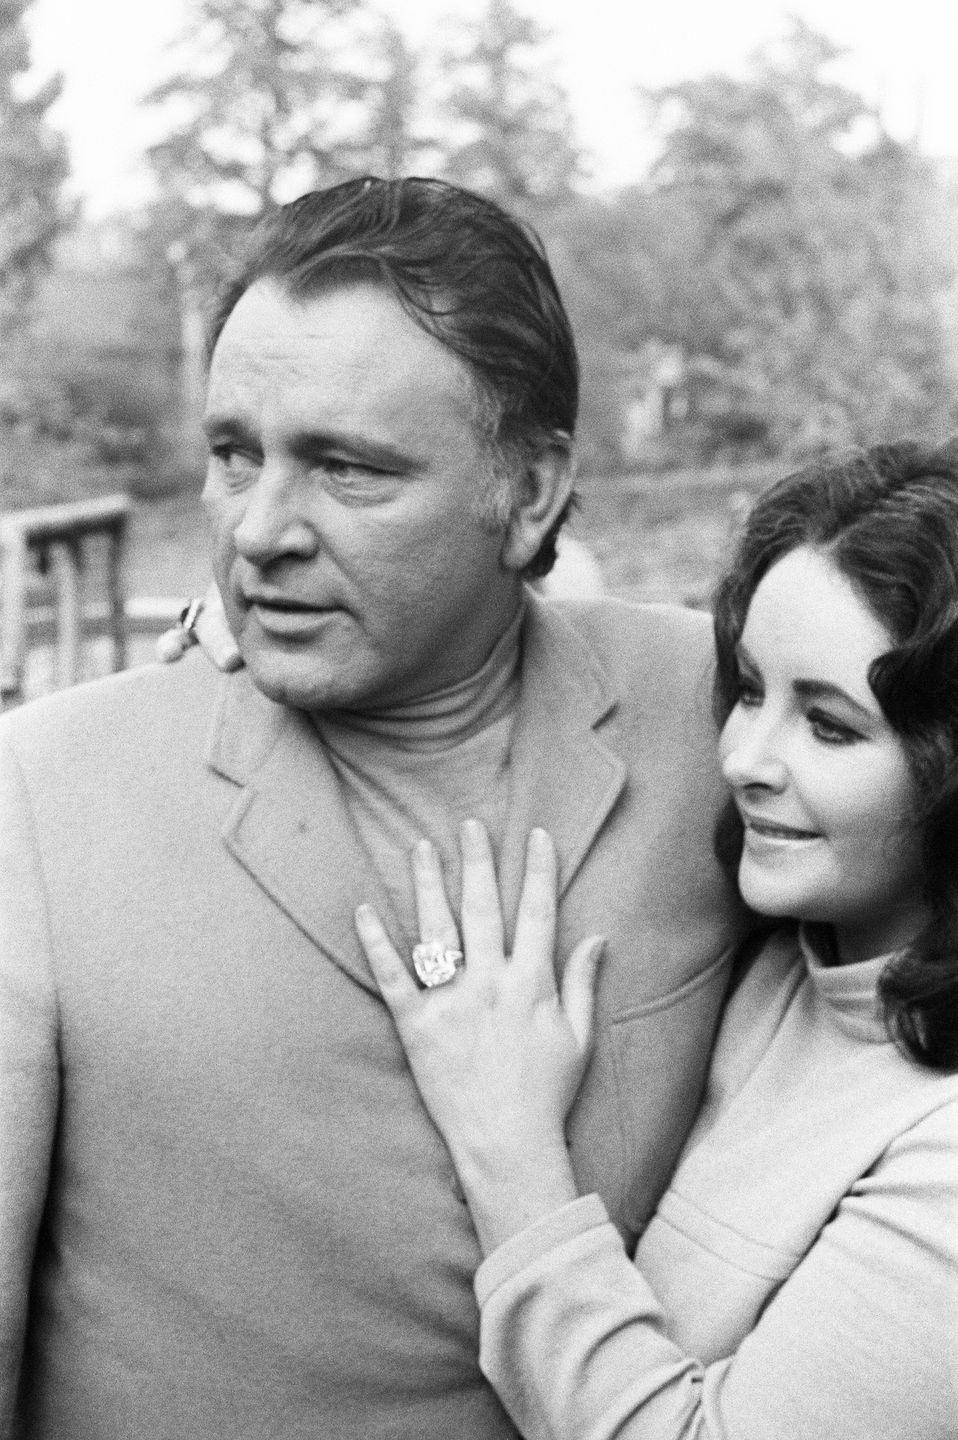 """<p>Although their relationship was highly publicized, their elopement when they married for a second time was a low-key affair. The couple said """"I do"""" (again) in an outdoor <a href=""""https://www.womansworld.com/gallery/entertainment/elizabeth-taylor-s-husbands-through-the-years-121515"""" rel=""""nofollow noopener"""" target=""""_blank"""" data-ylk=""""slk:ceremony in Botswana"""" class=""""link rapid-noclick-resp"""">ceremony in Botswana</a> with just an official and a witness joining them. </p>"""